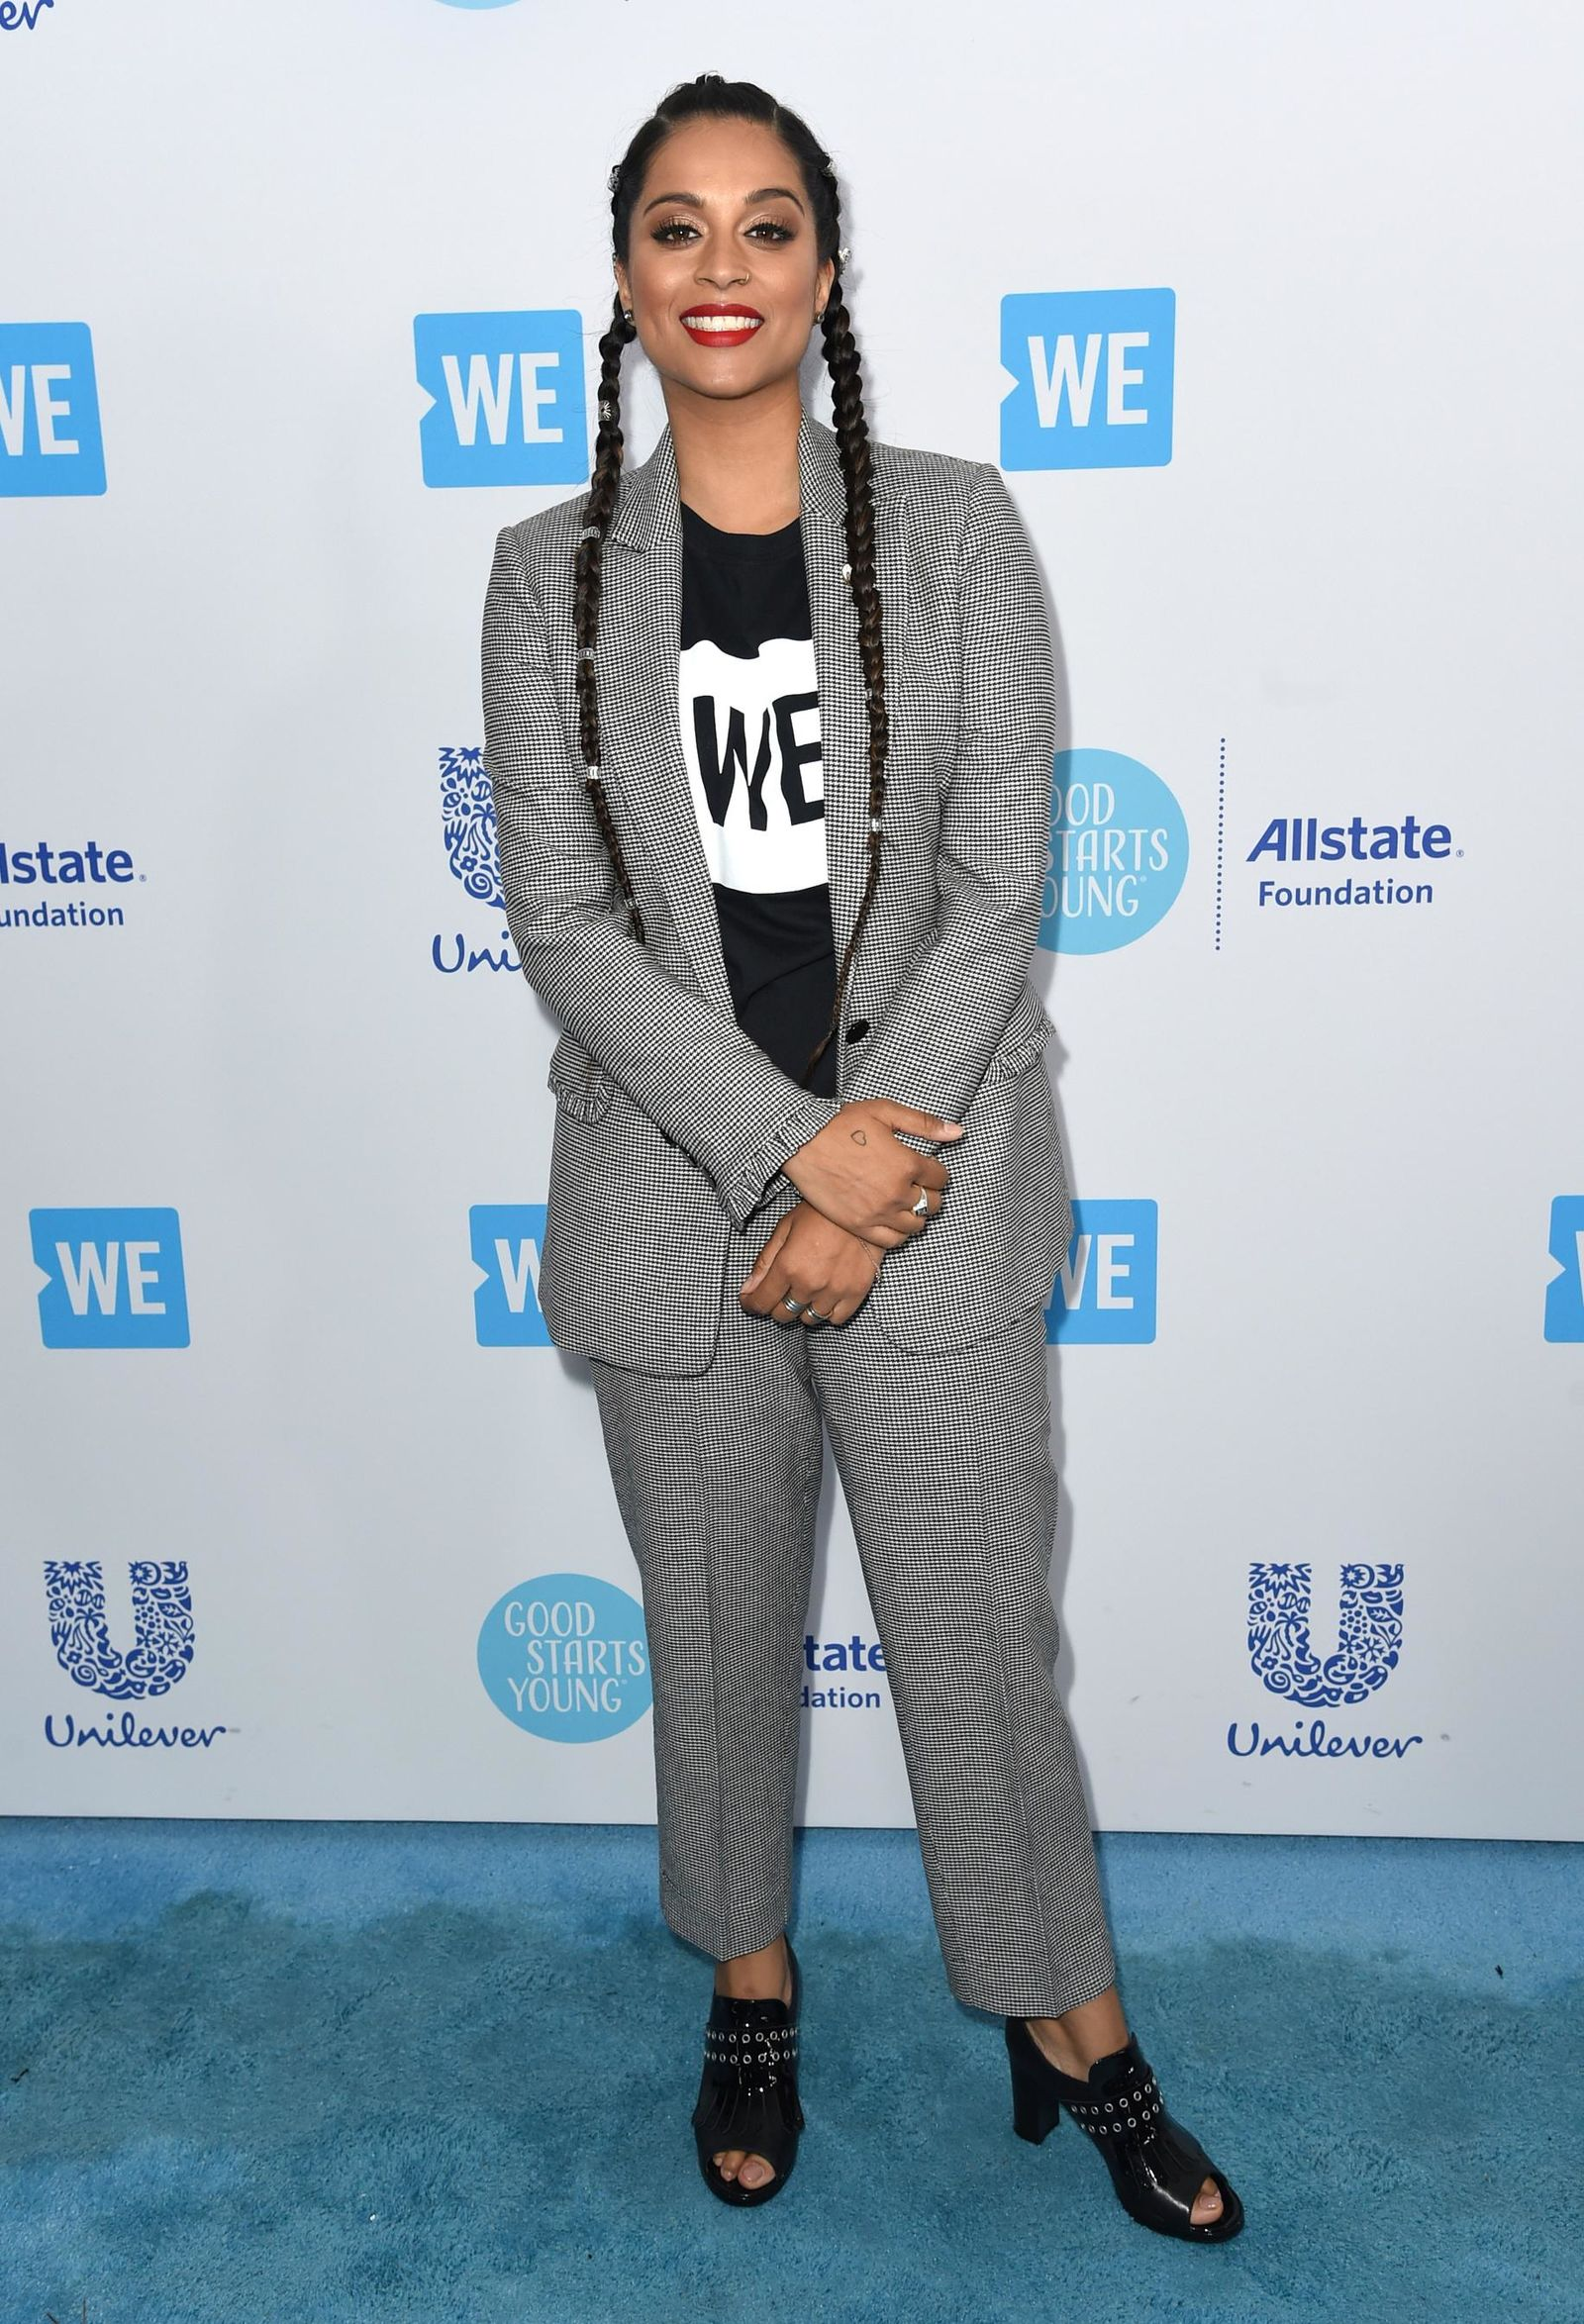 FILE - In this April 19, 2018 file photo, Lilly Singh arrives at WE Day California at The Forum in Inglewood, Calif. (Photo by Richard Shotwell/Invision/AP, File)